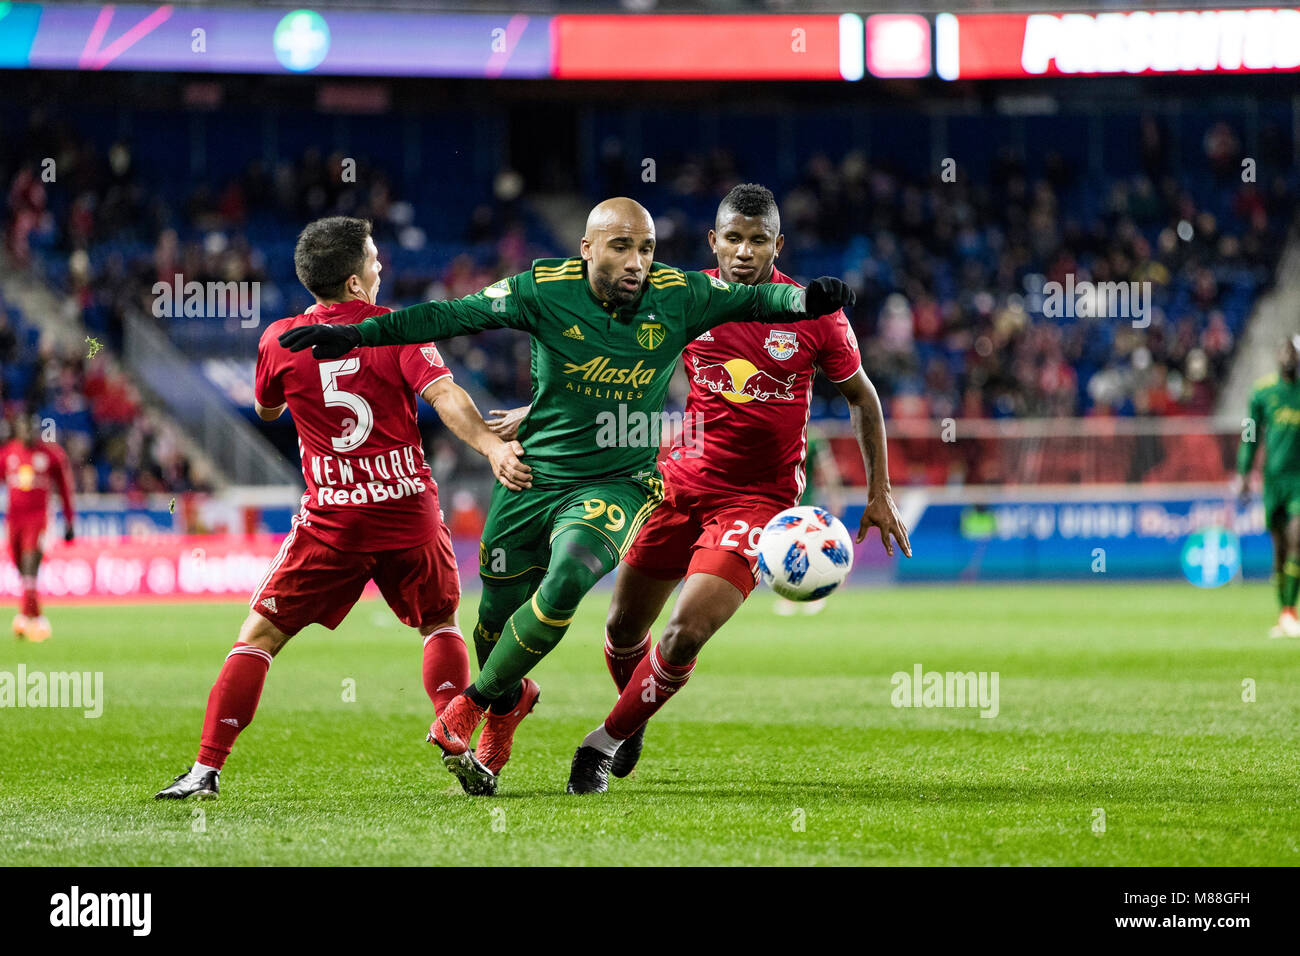 Samuel Armenteros (99) splits the defense in the Timbers 4-0 loss to the Red Bulls. - Stock Image